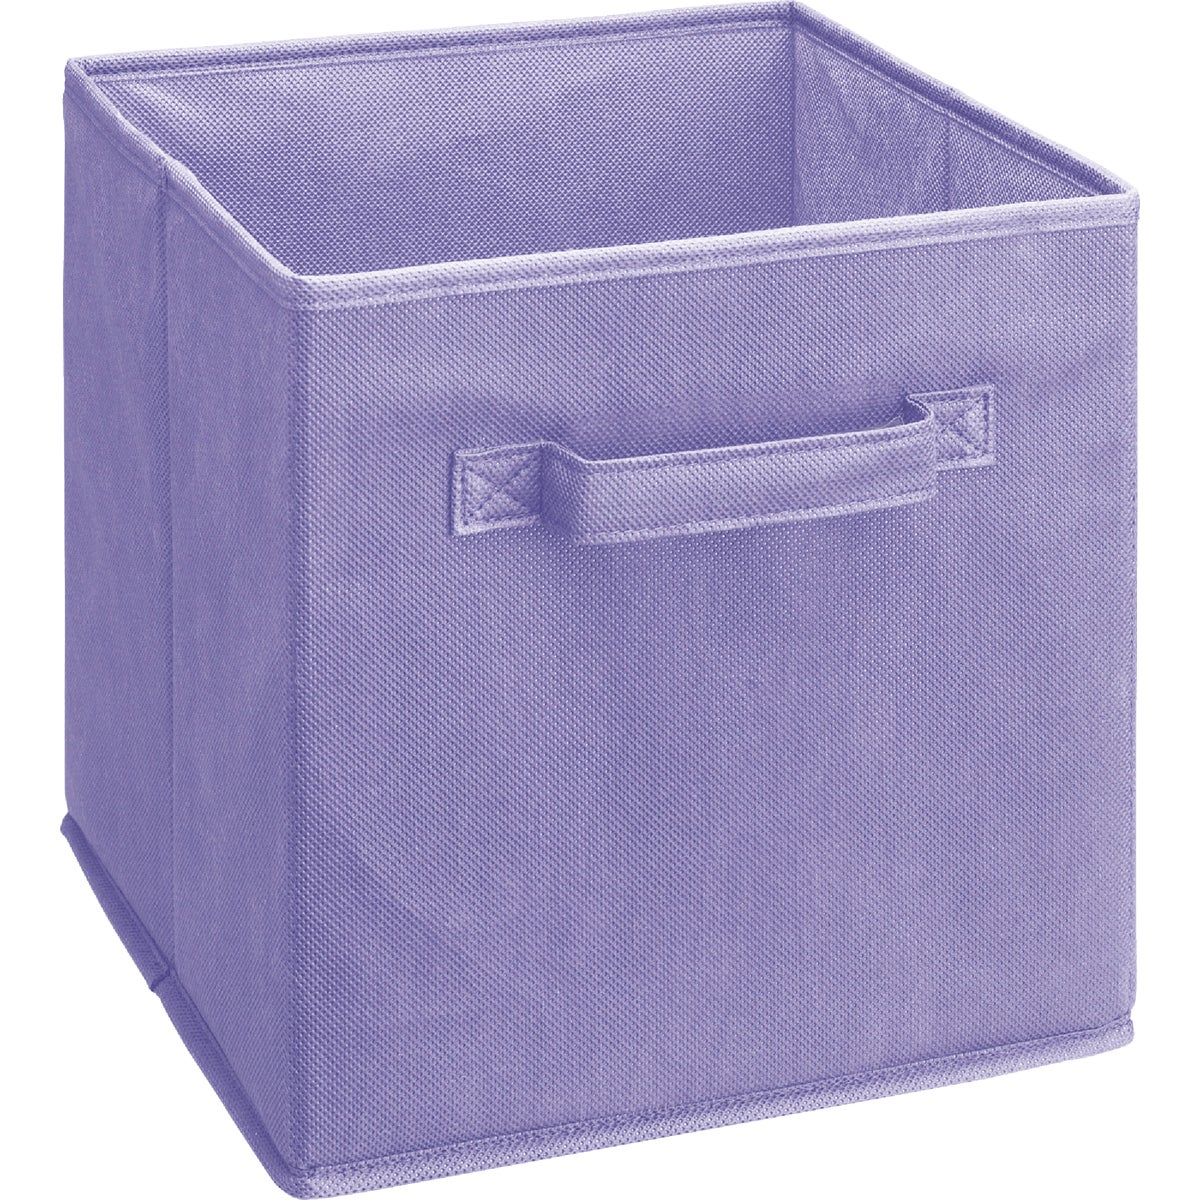 LT PURPLE FABRIC DRAWER - 87800 by Closetmaid